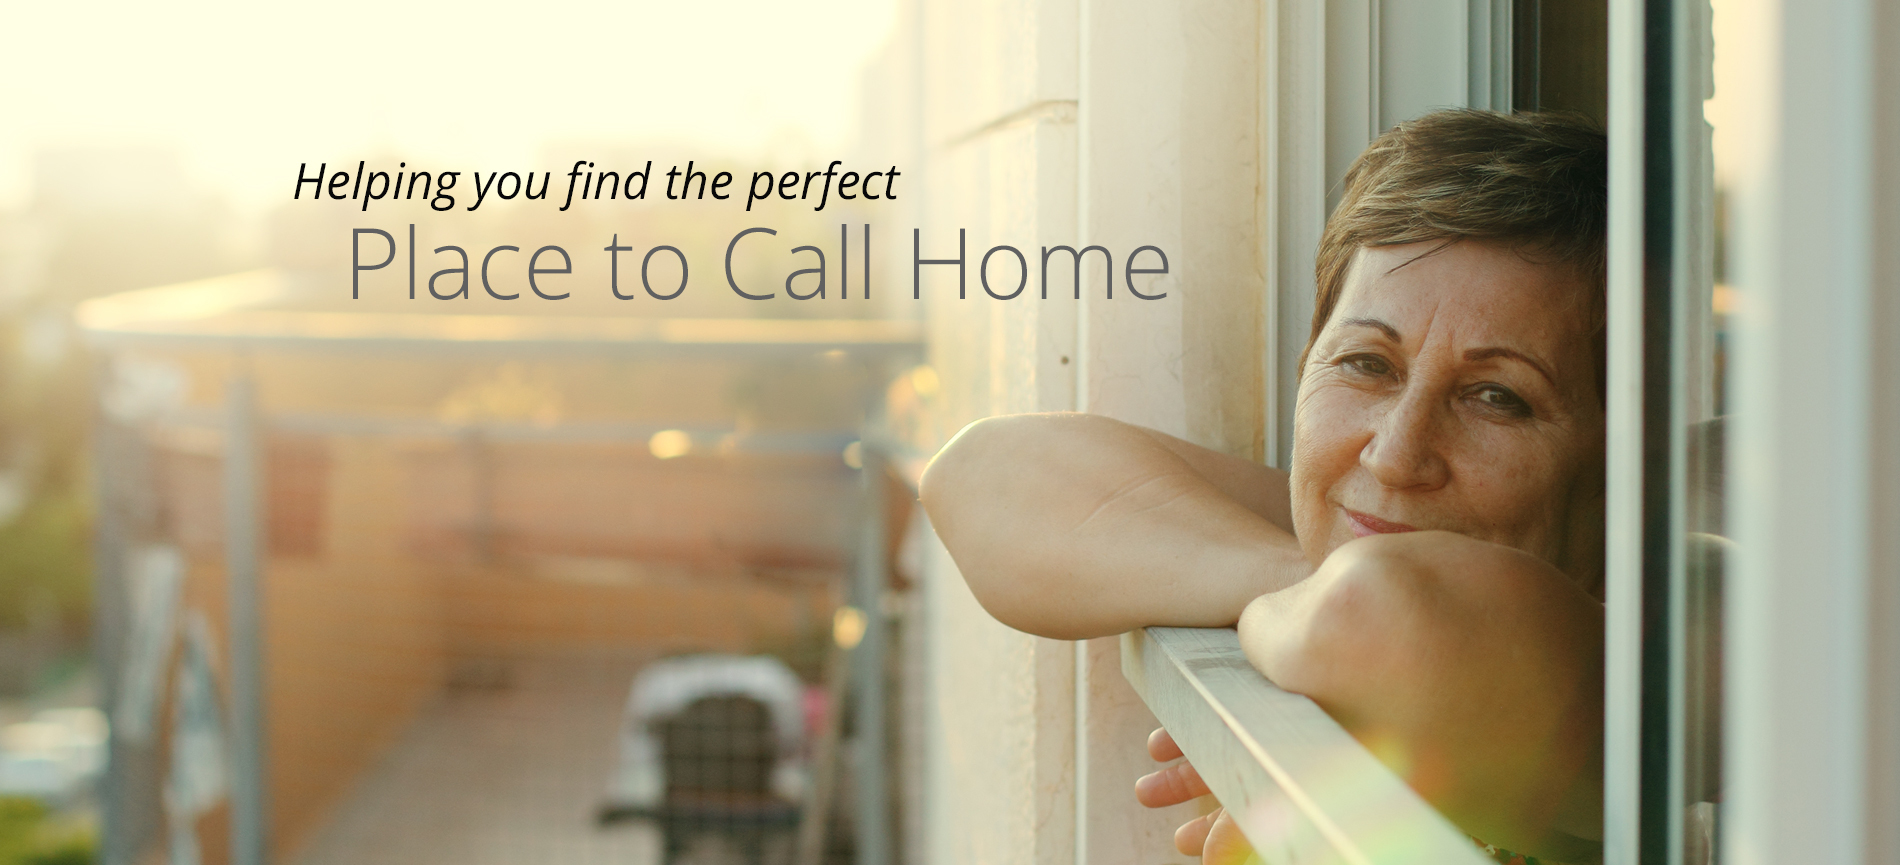 Helping you find the perfect place to call home.